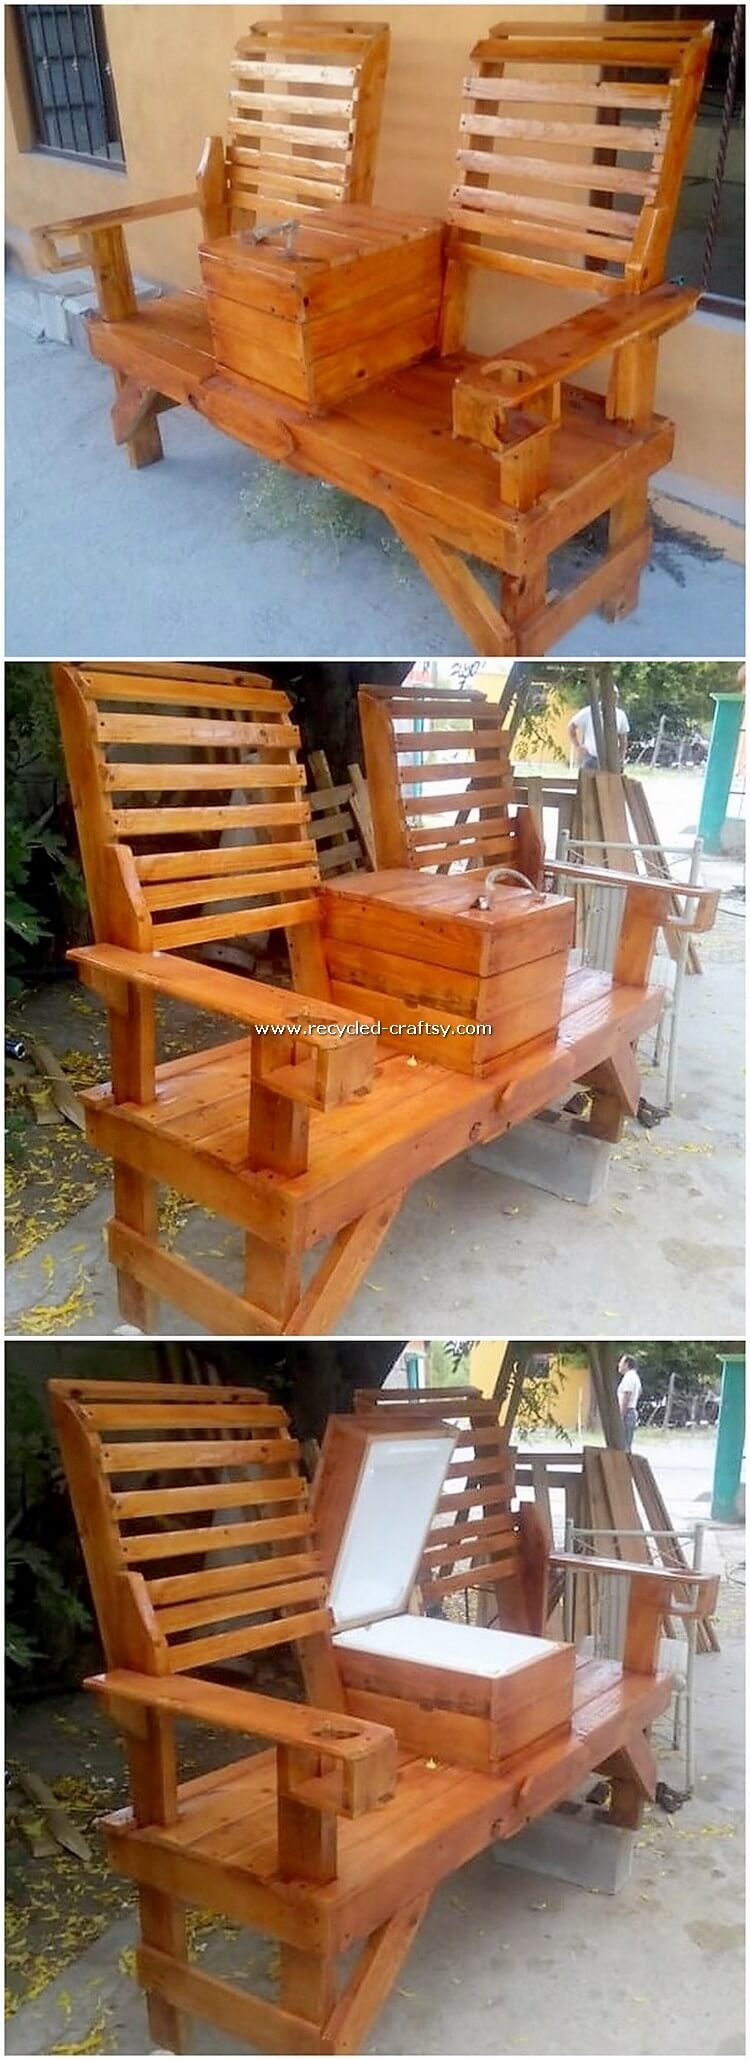 Pallet Bench with Center Table